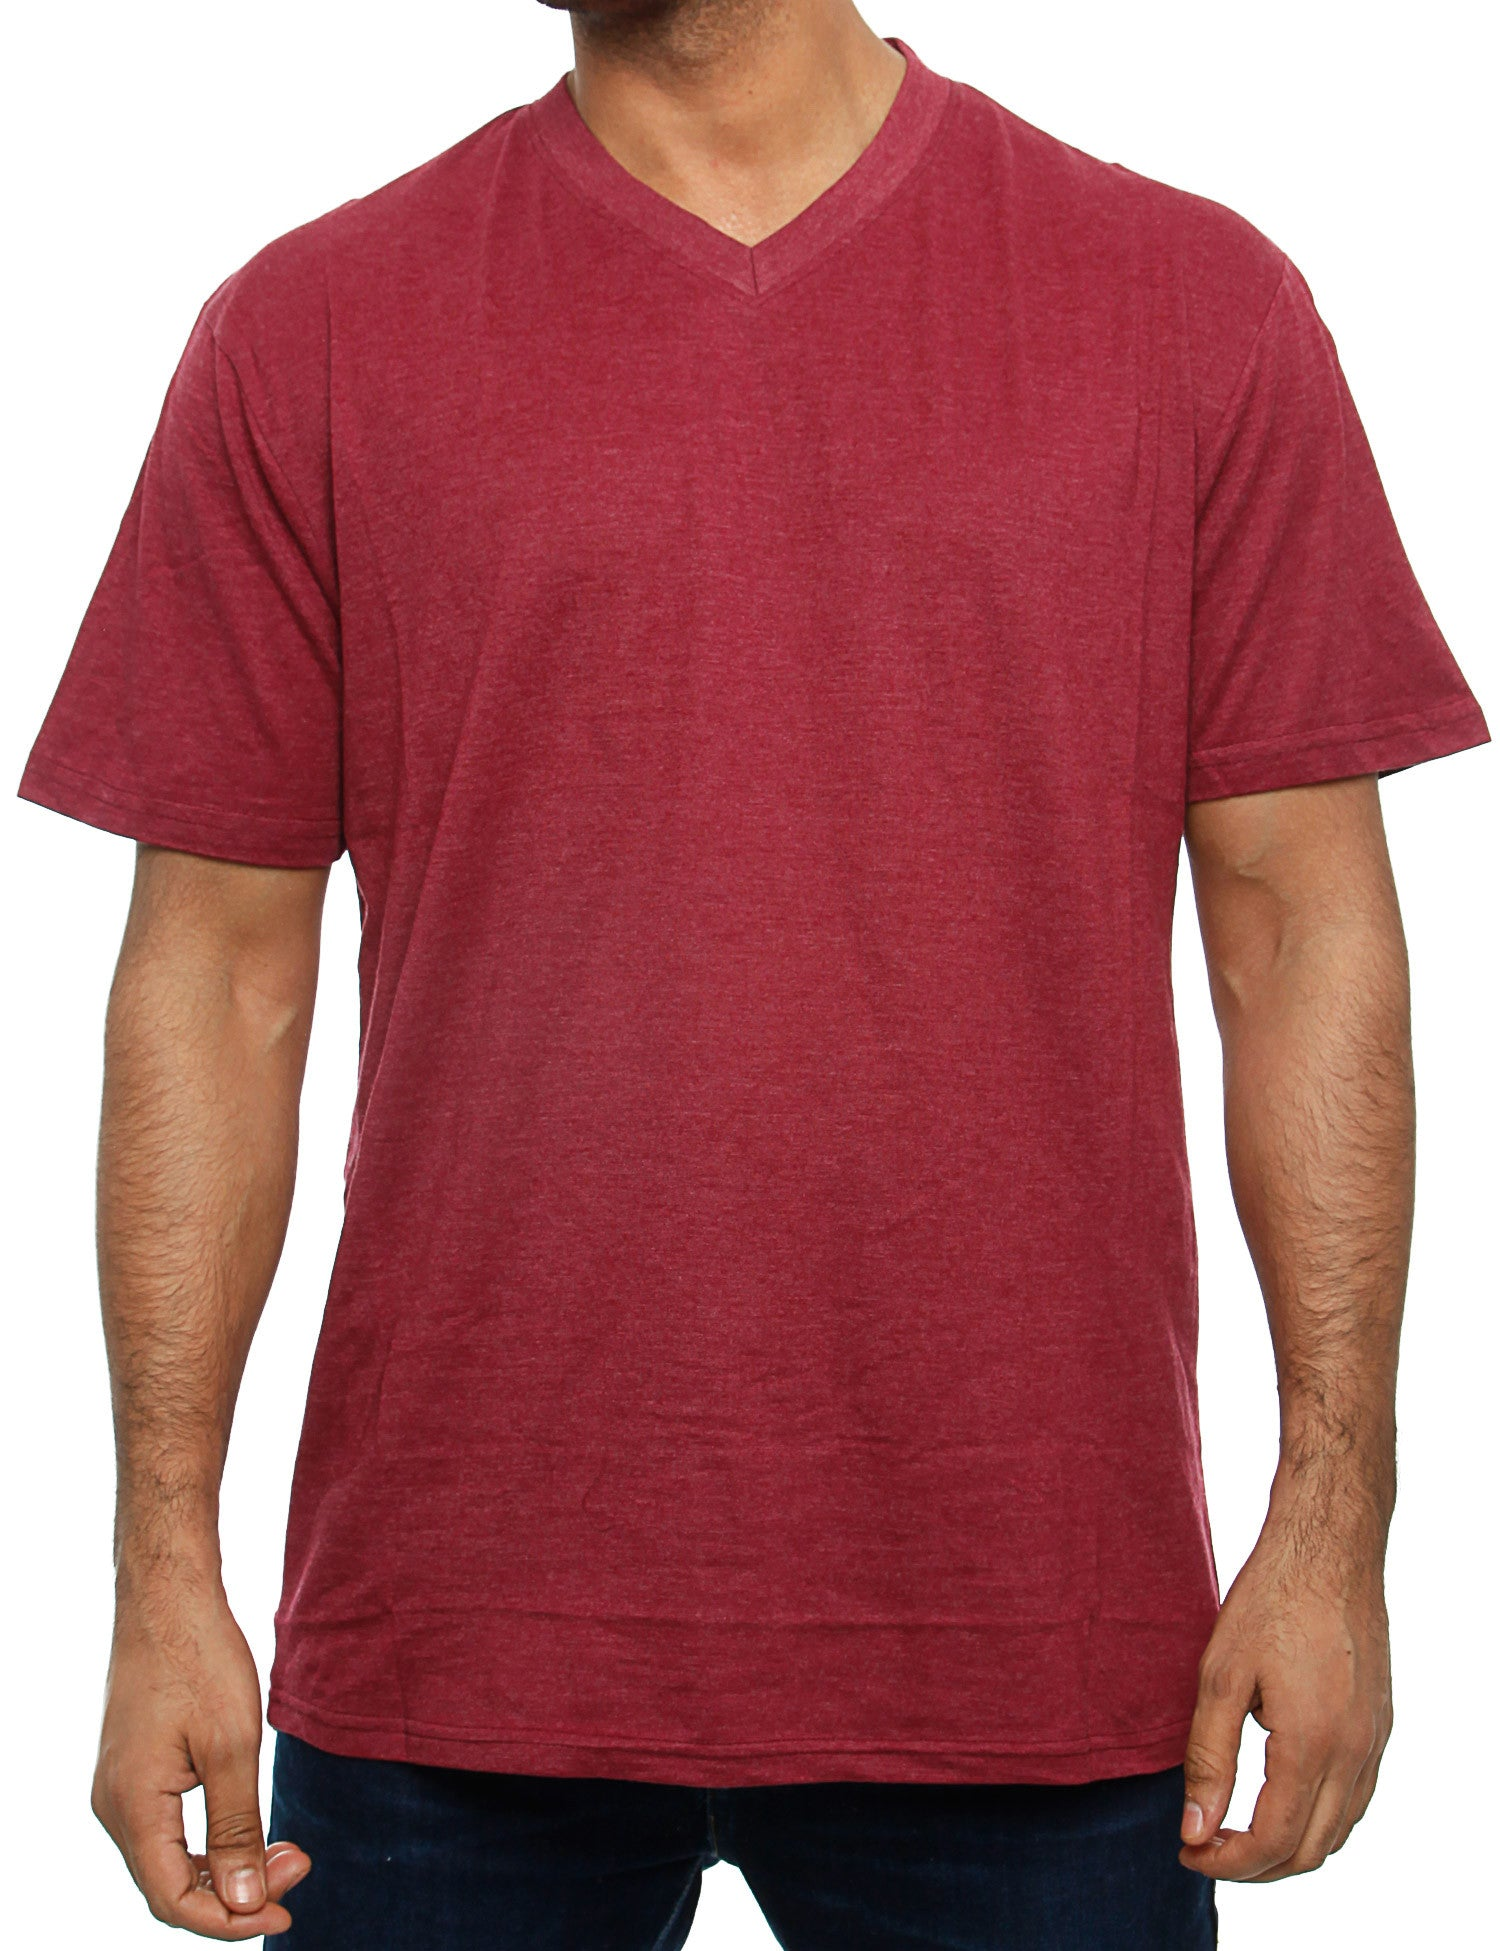 Southpole T-Shirt 14391-1401 Heather Burgundy Red